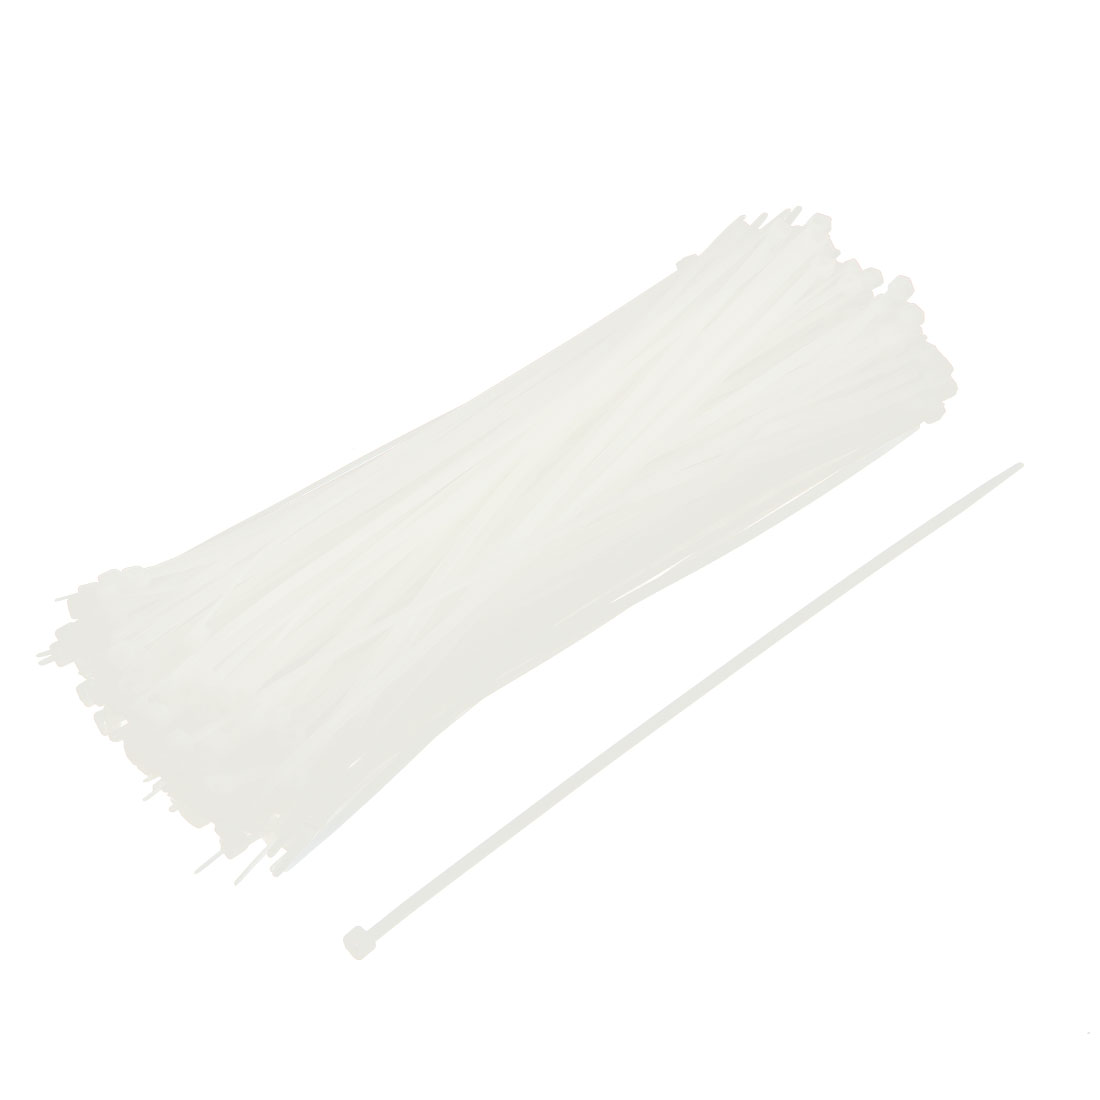 250pcs 5mmx250mm White Zip-Tie Strap Nylon Cable Tie Wire